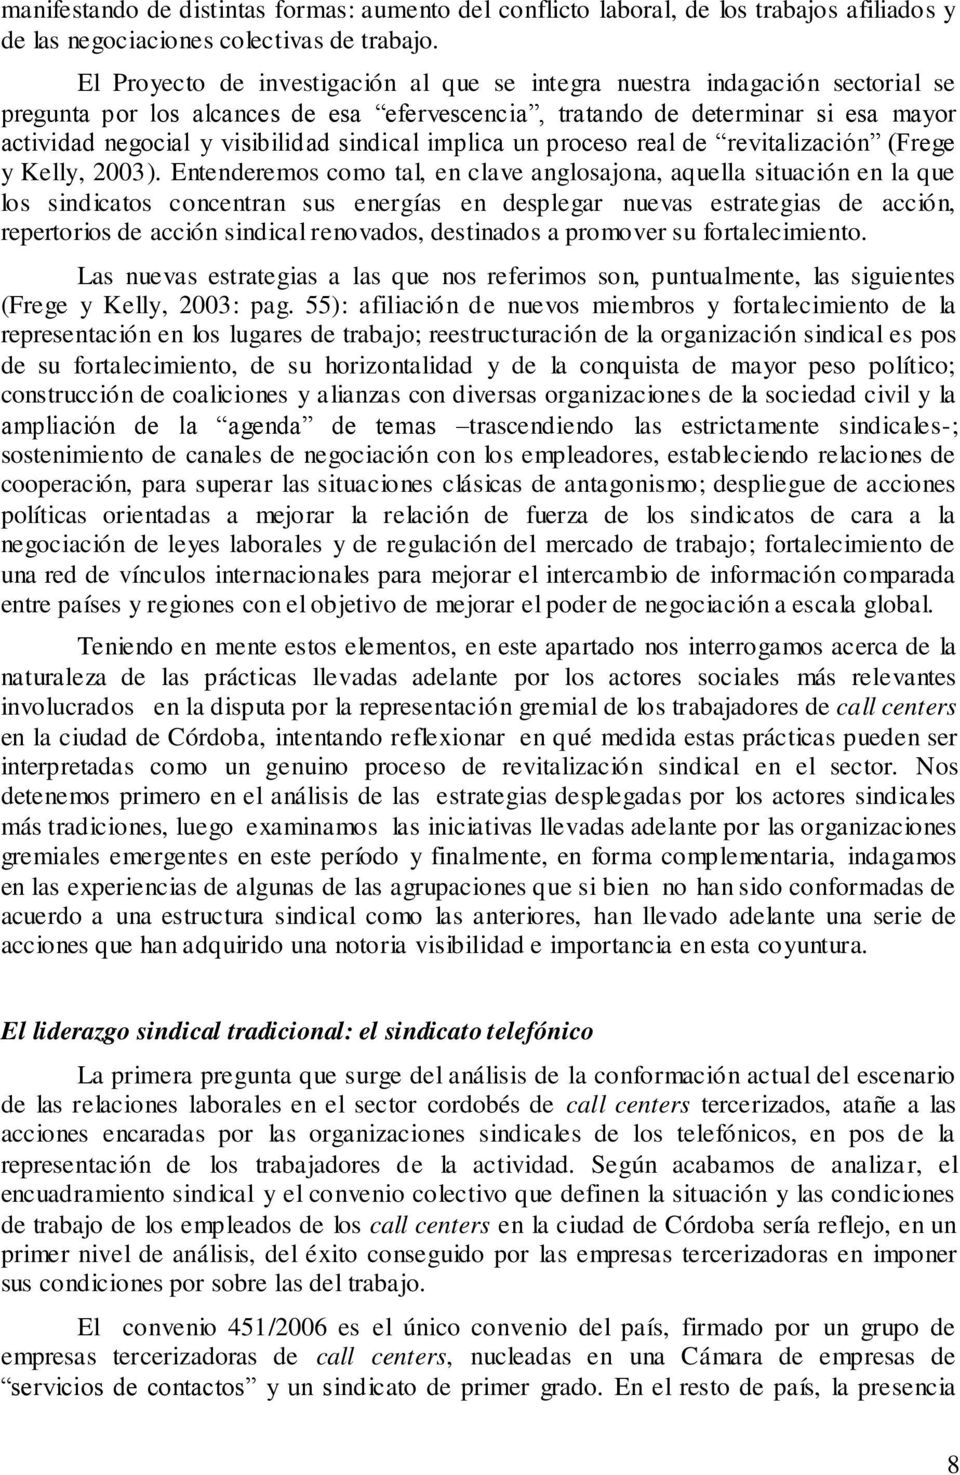 sindical implica un proceso real de revitalización (Frege y Kelly, 2003).